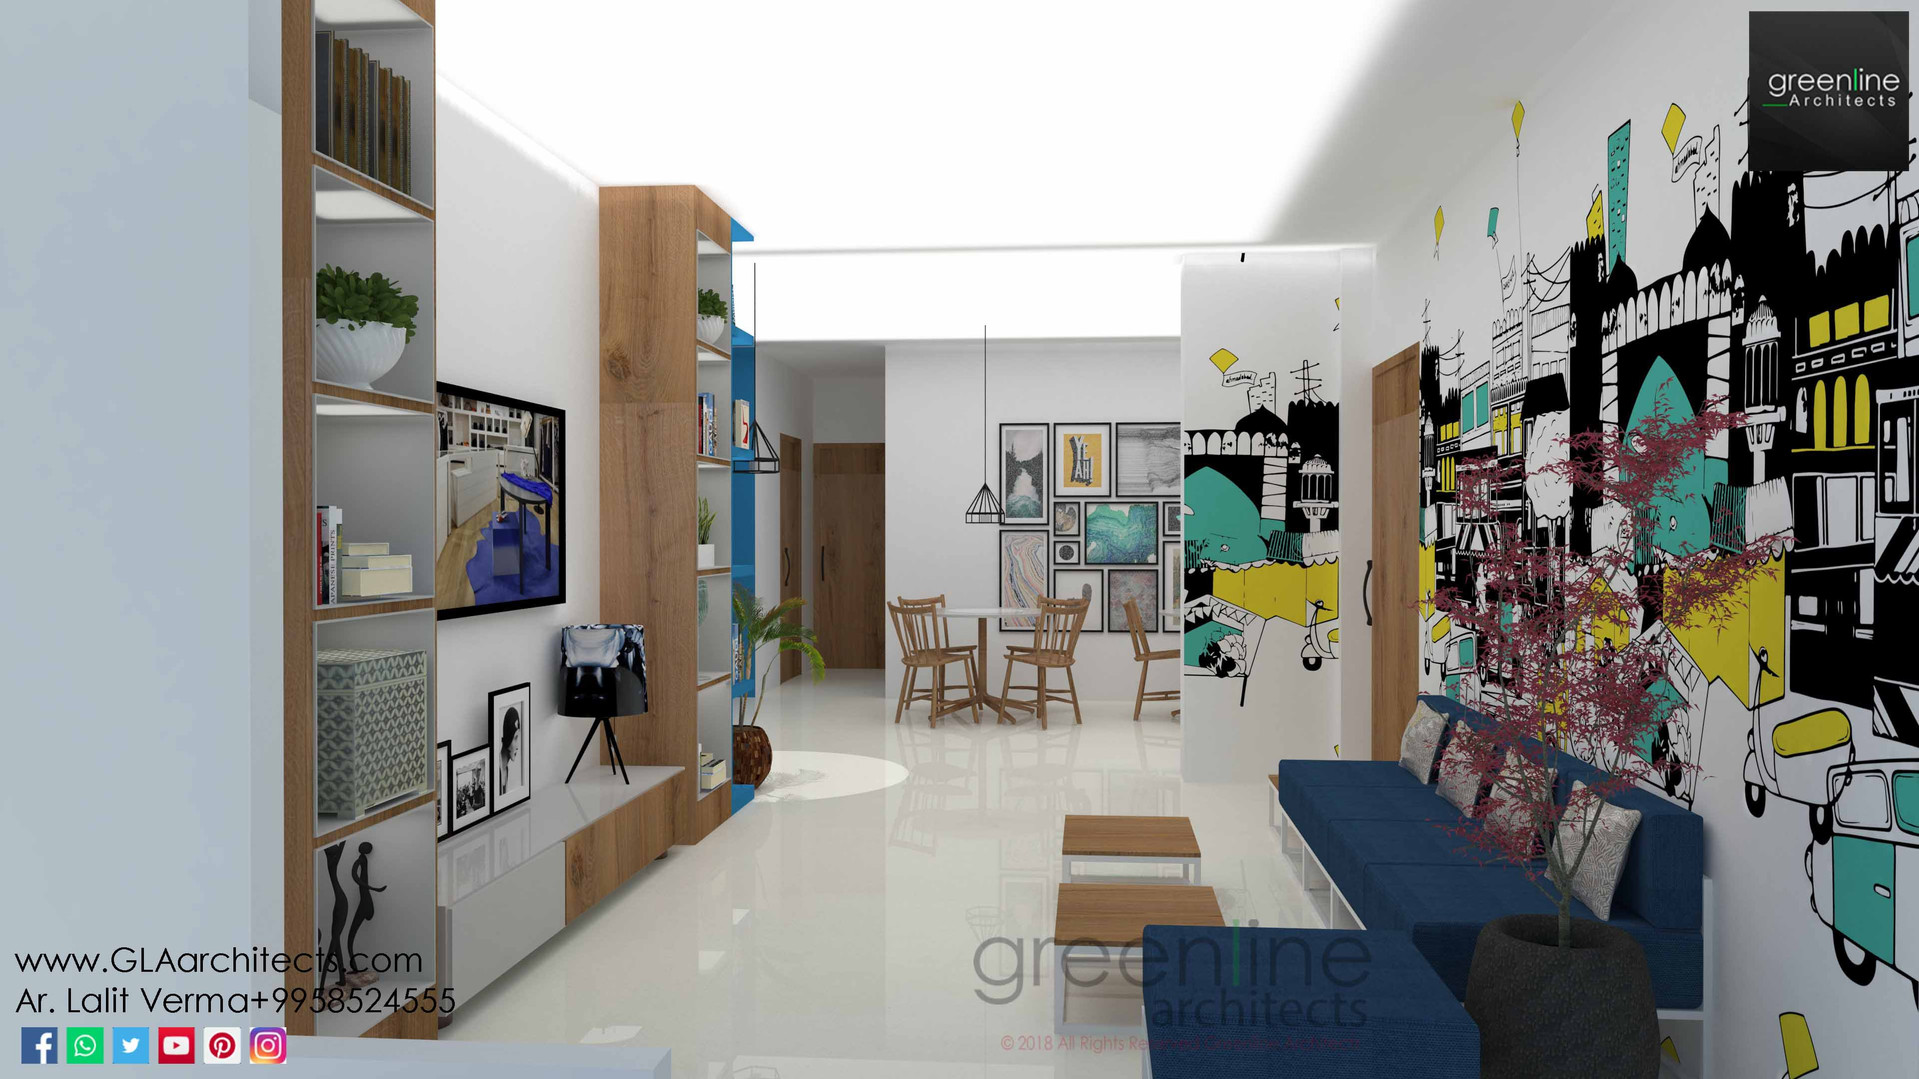 Livork_Hostel_Room_Interior_Design (3).j